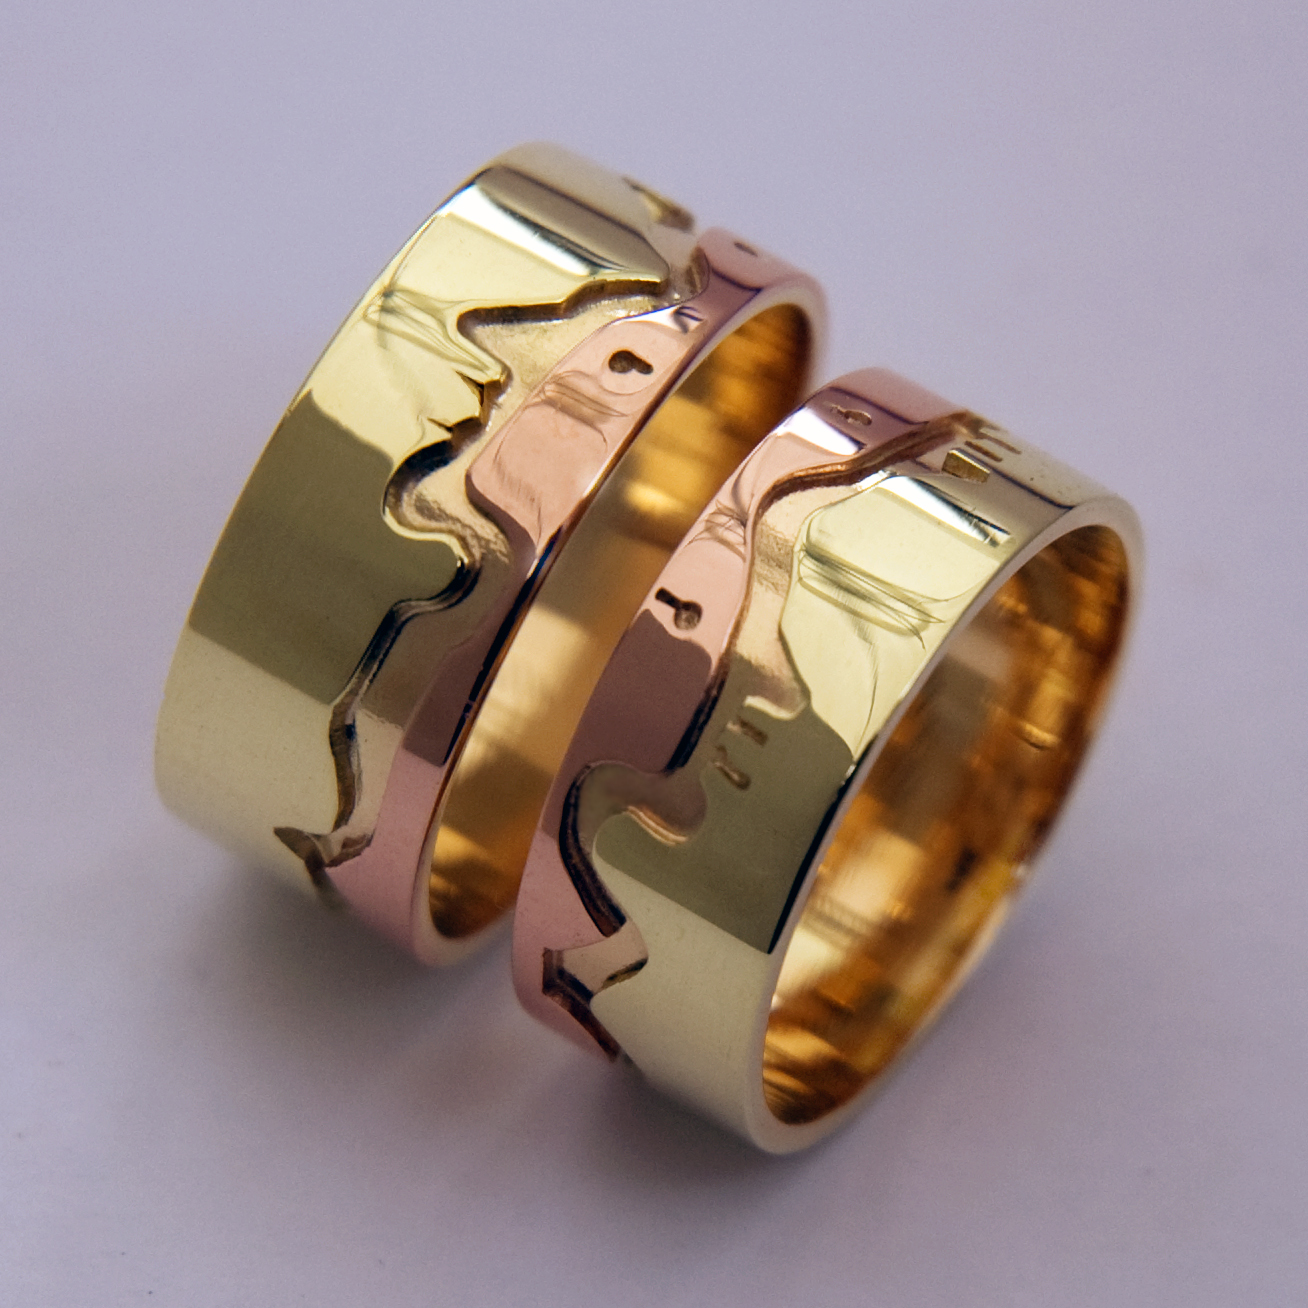 Native American wedding rings based on the seven Ojibwe Midewiwin Grandfather Teachings